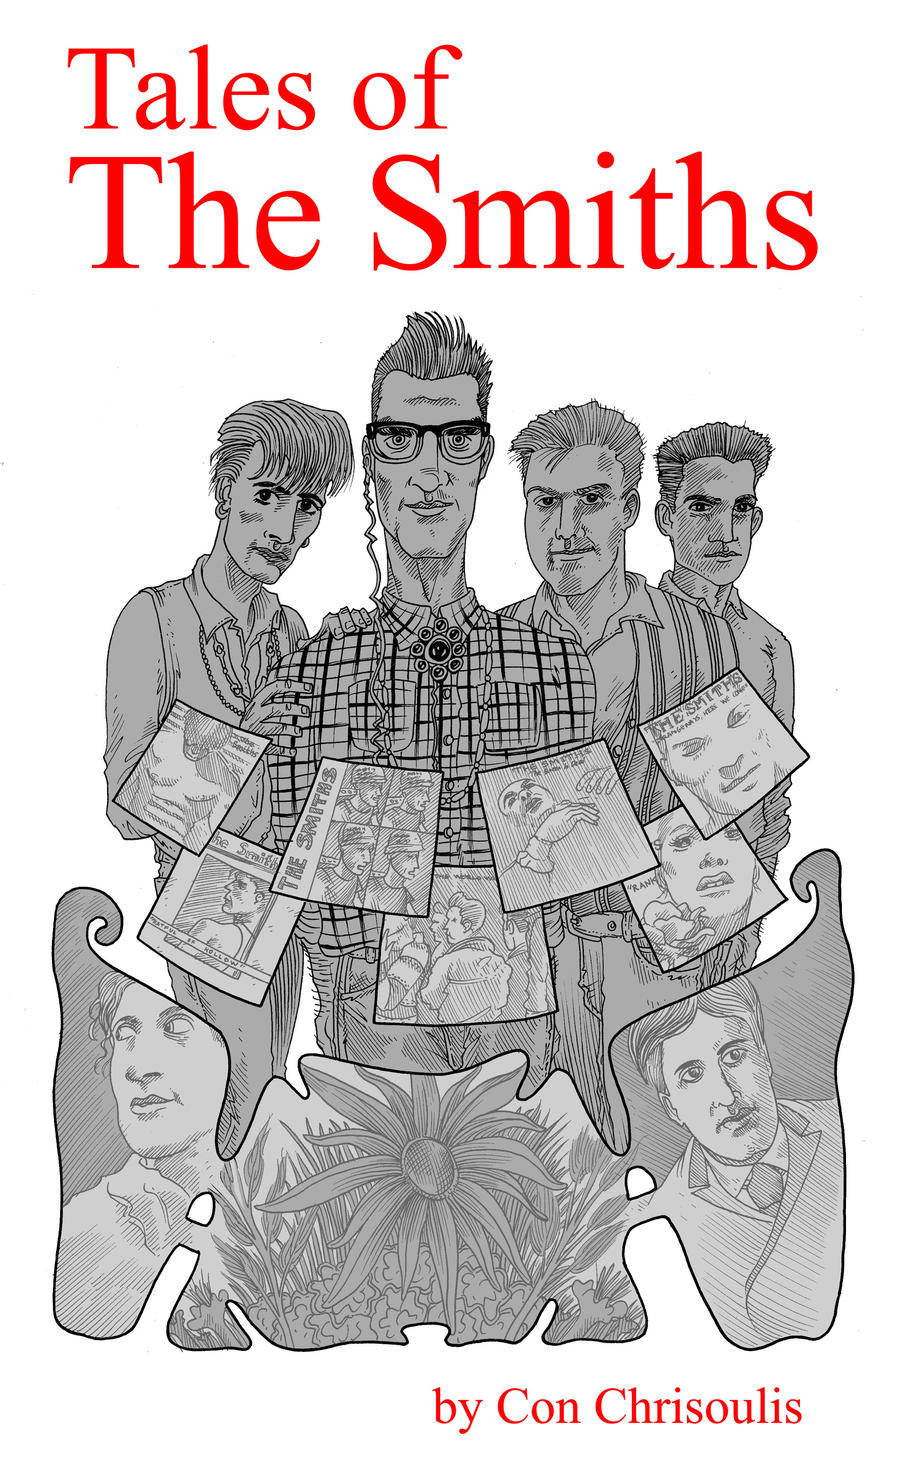 tales_of_the_smiths_promo_by_mataiodoxia